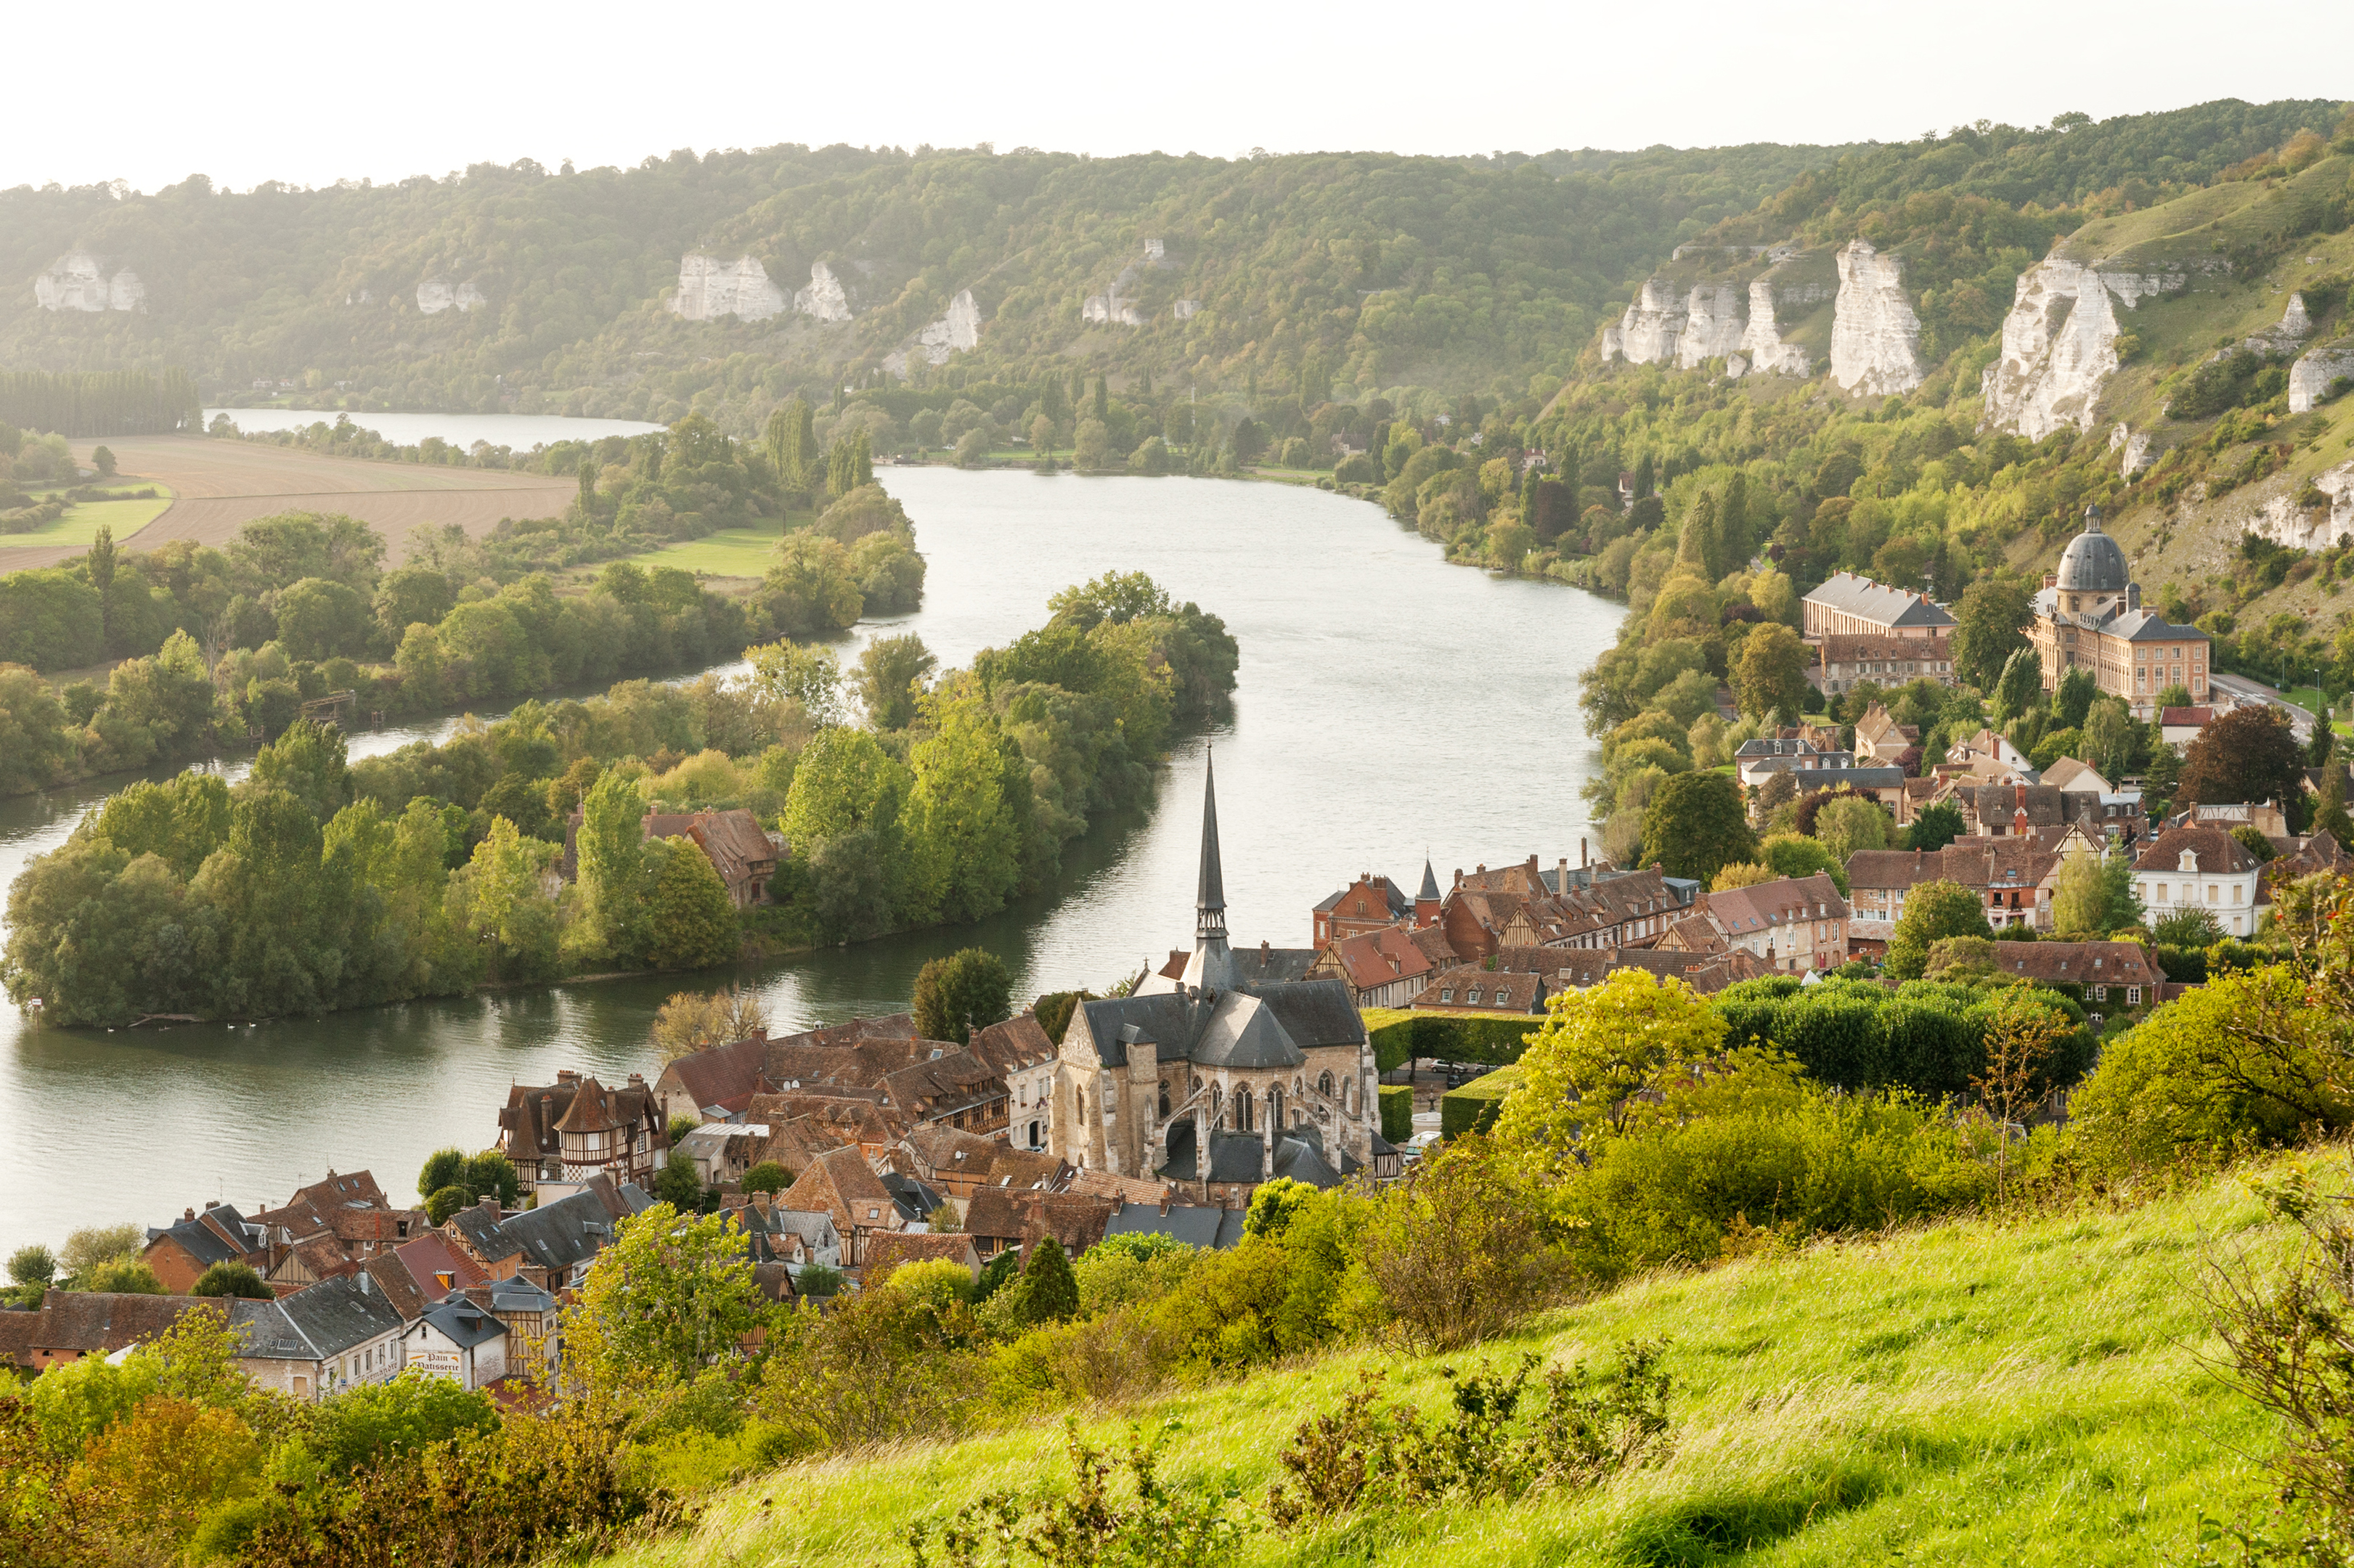 Les Andelys commune on the banks of Seine, Upper Normandy (iStock)